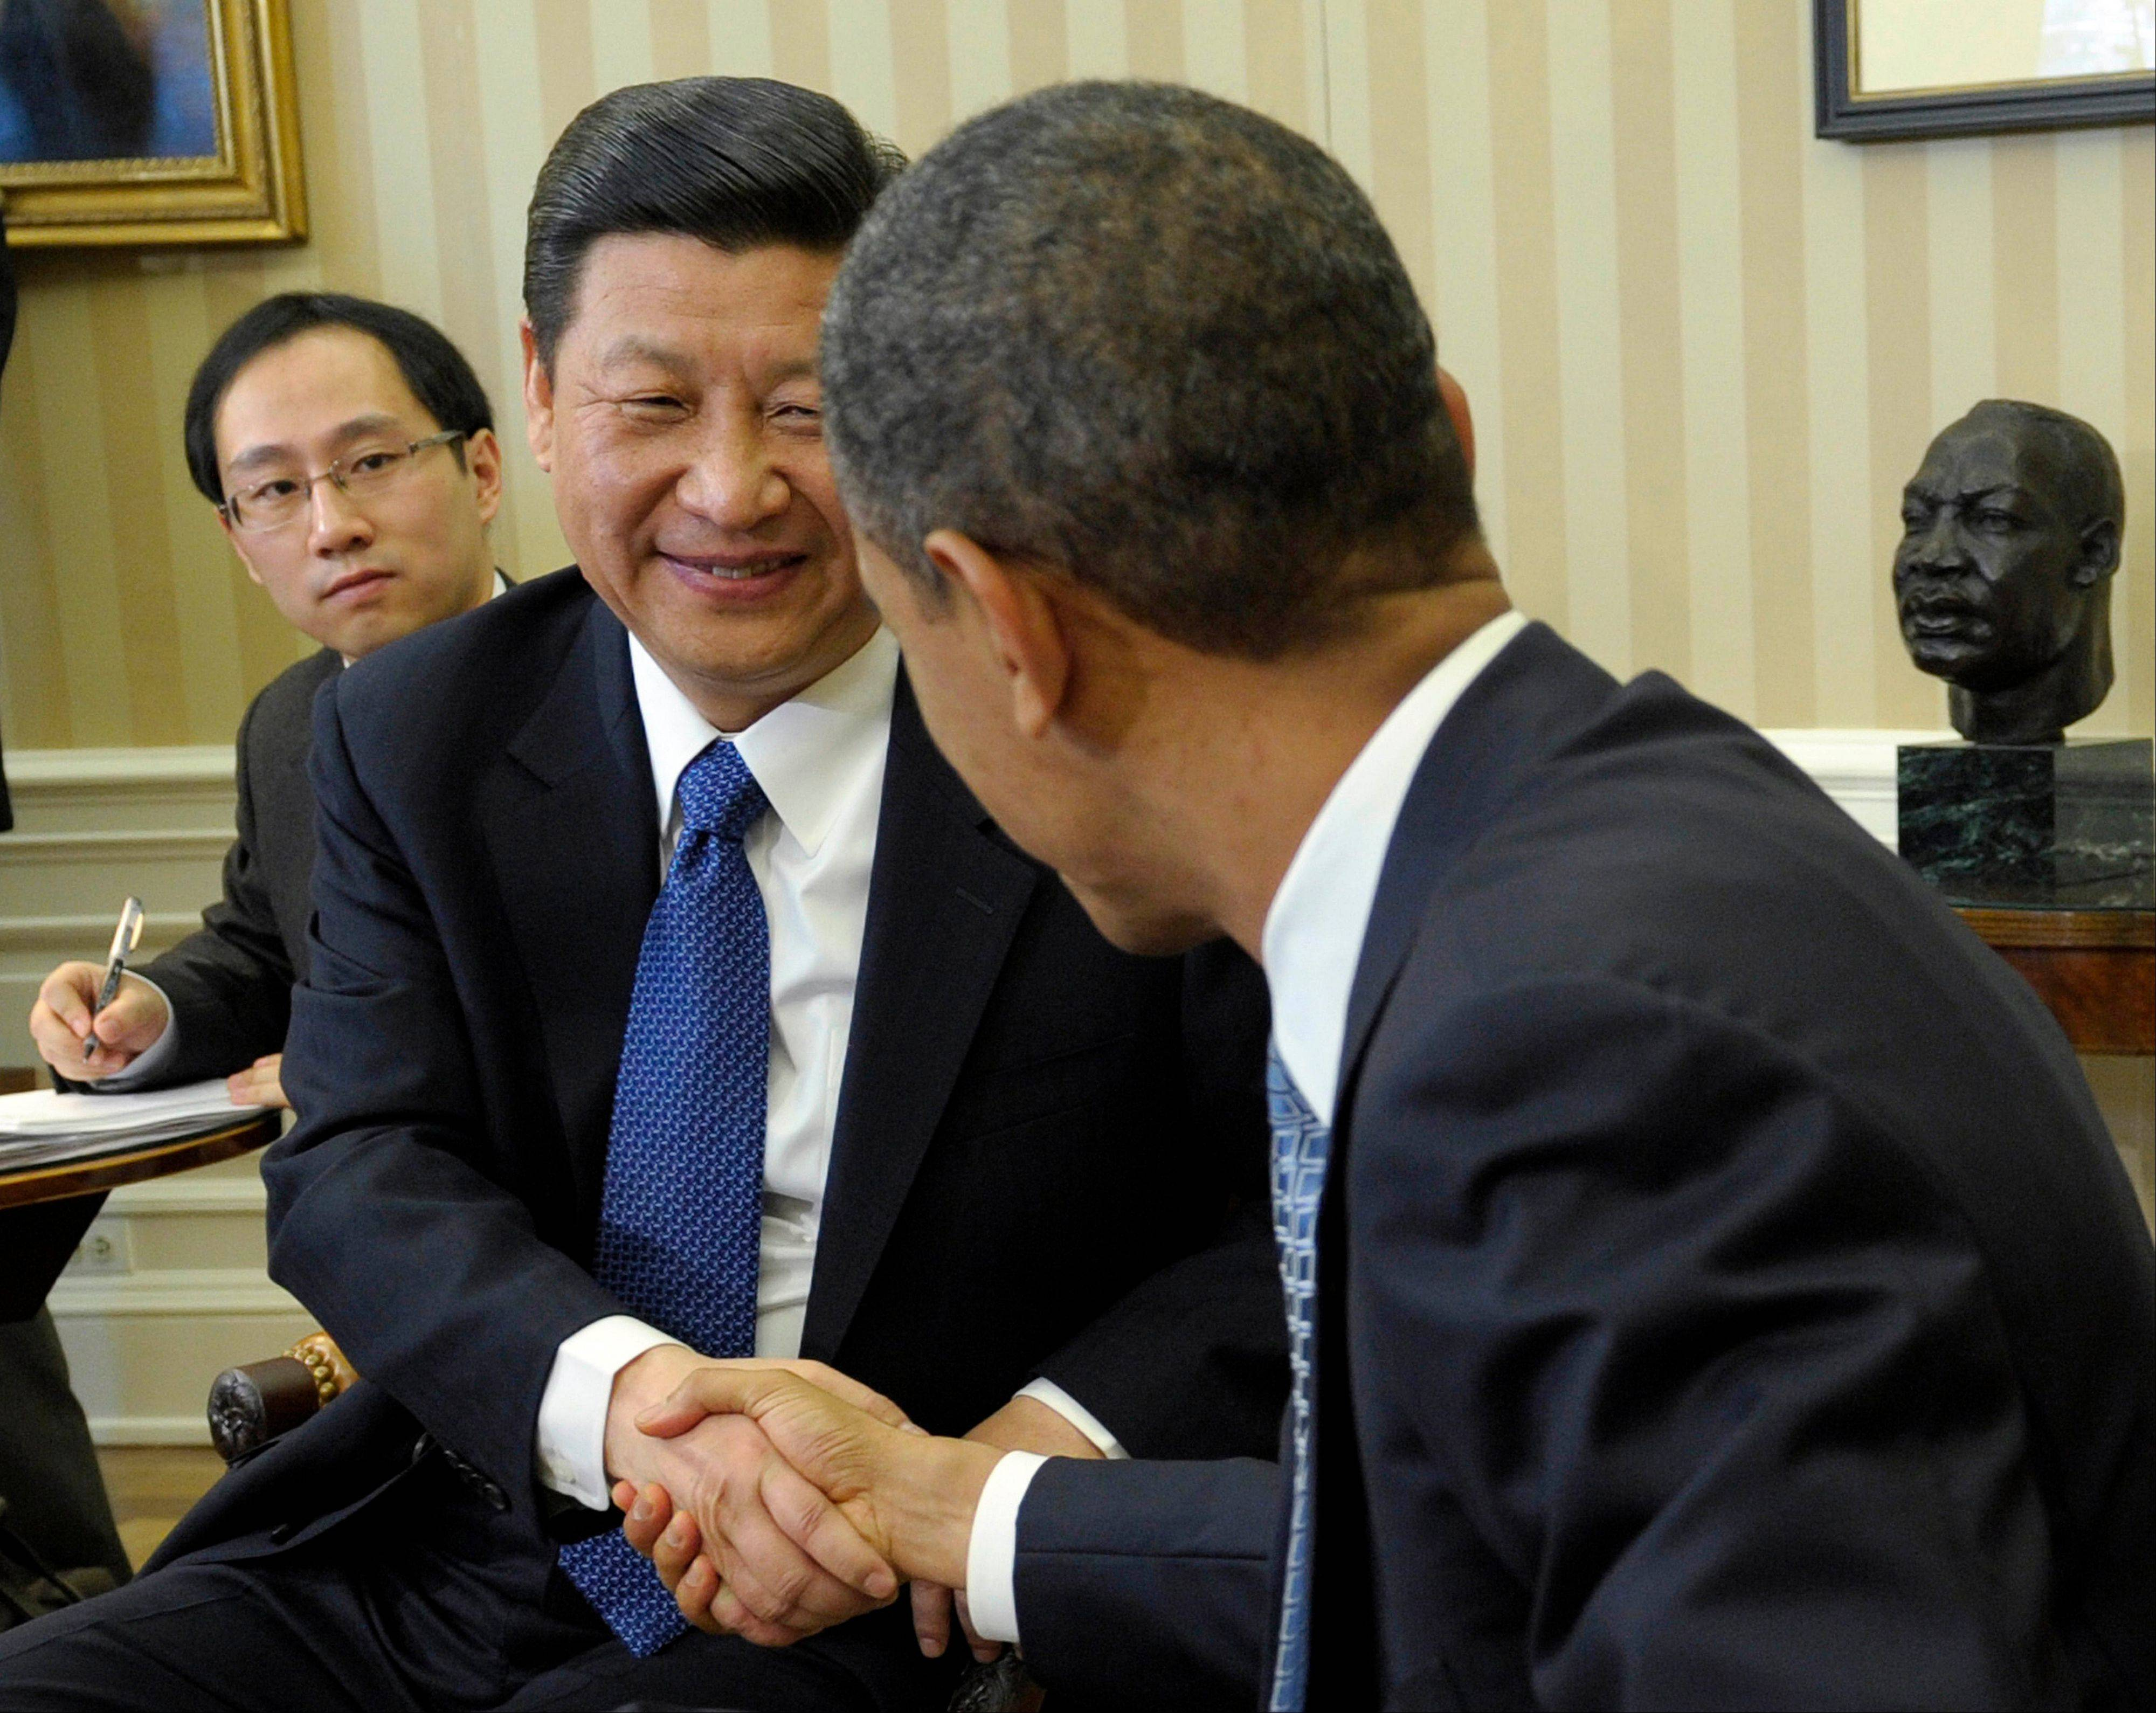 President Barack Obama and Chinese Vice President Xi Jinping, left, visit at the White House Feb. 14, 2012. When Obama meets Jinping again this week, he will be visiting with China�s president � and cybersecurity will be high among issues that will be raised.